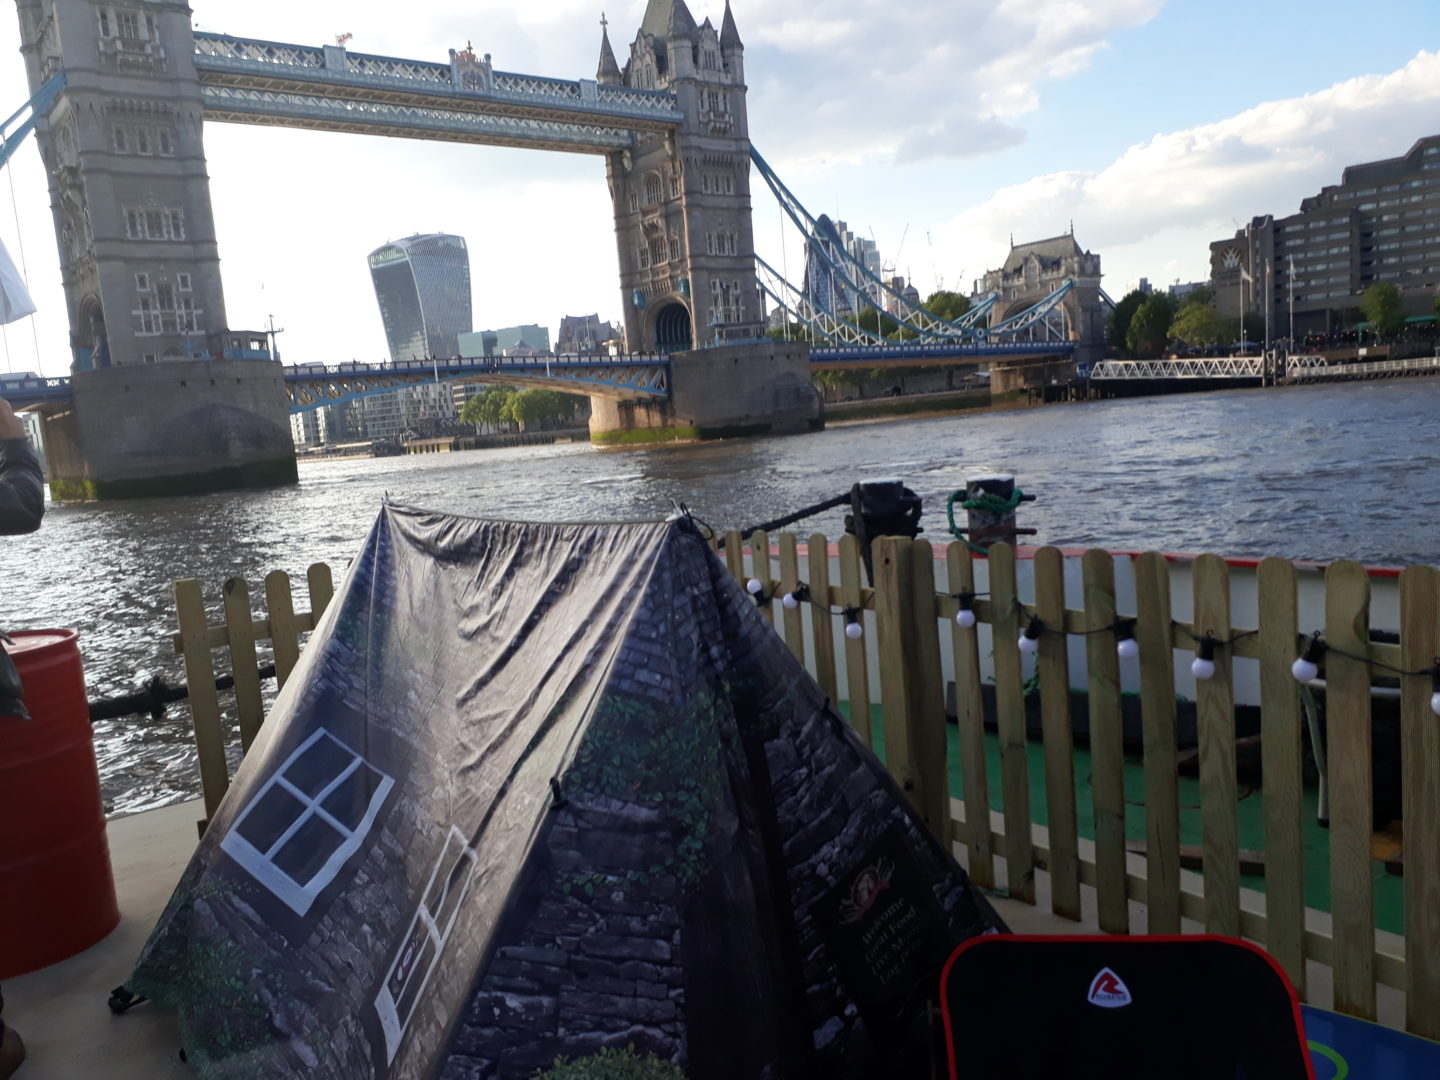 National Camping and Caravanning Week 2019 was launched with a floating campsite